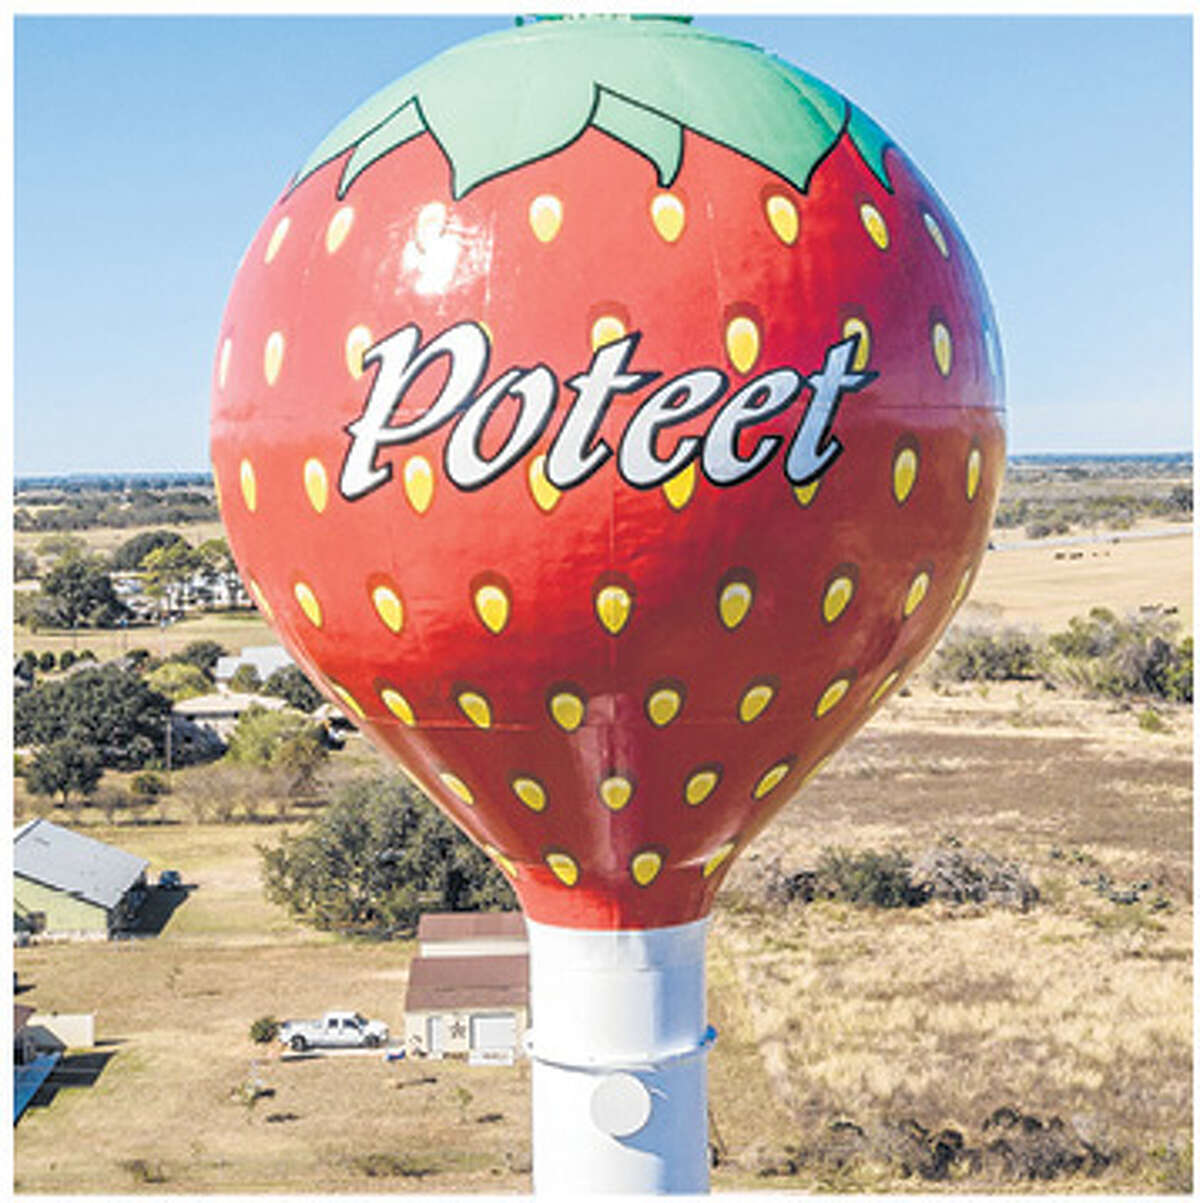 The City of Poteet's recently repainted strawberry water tower has been featured on several TV travel shows and websites.